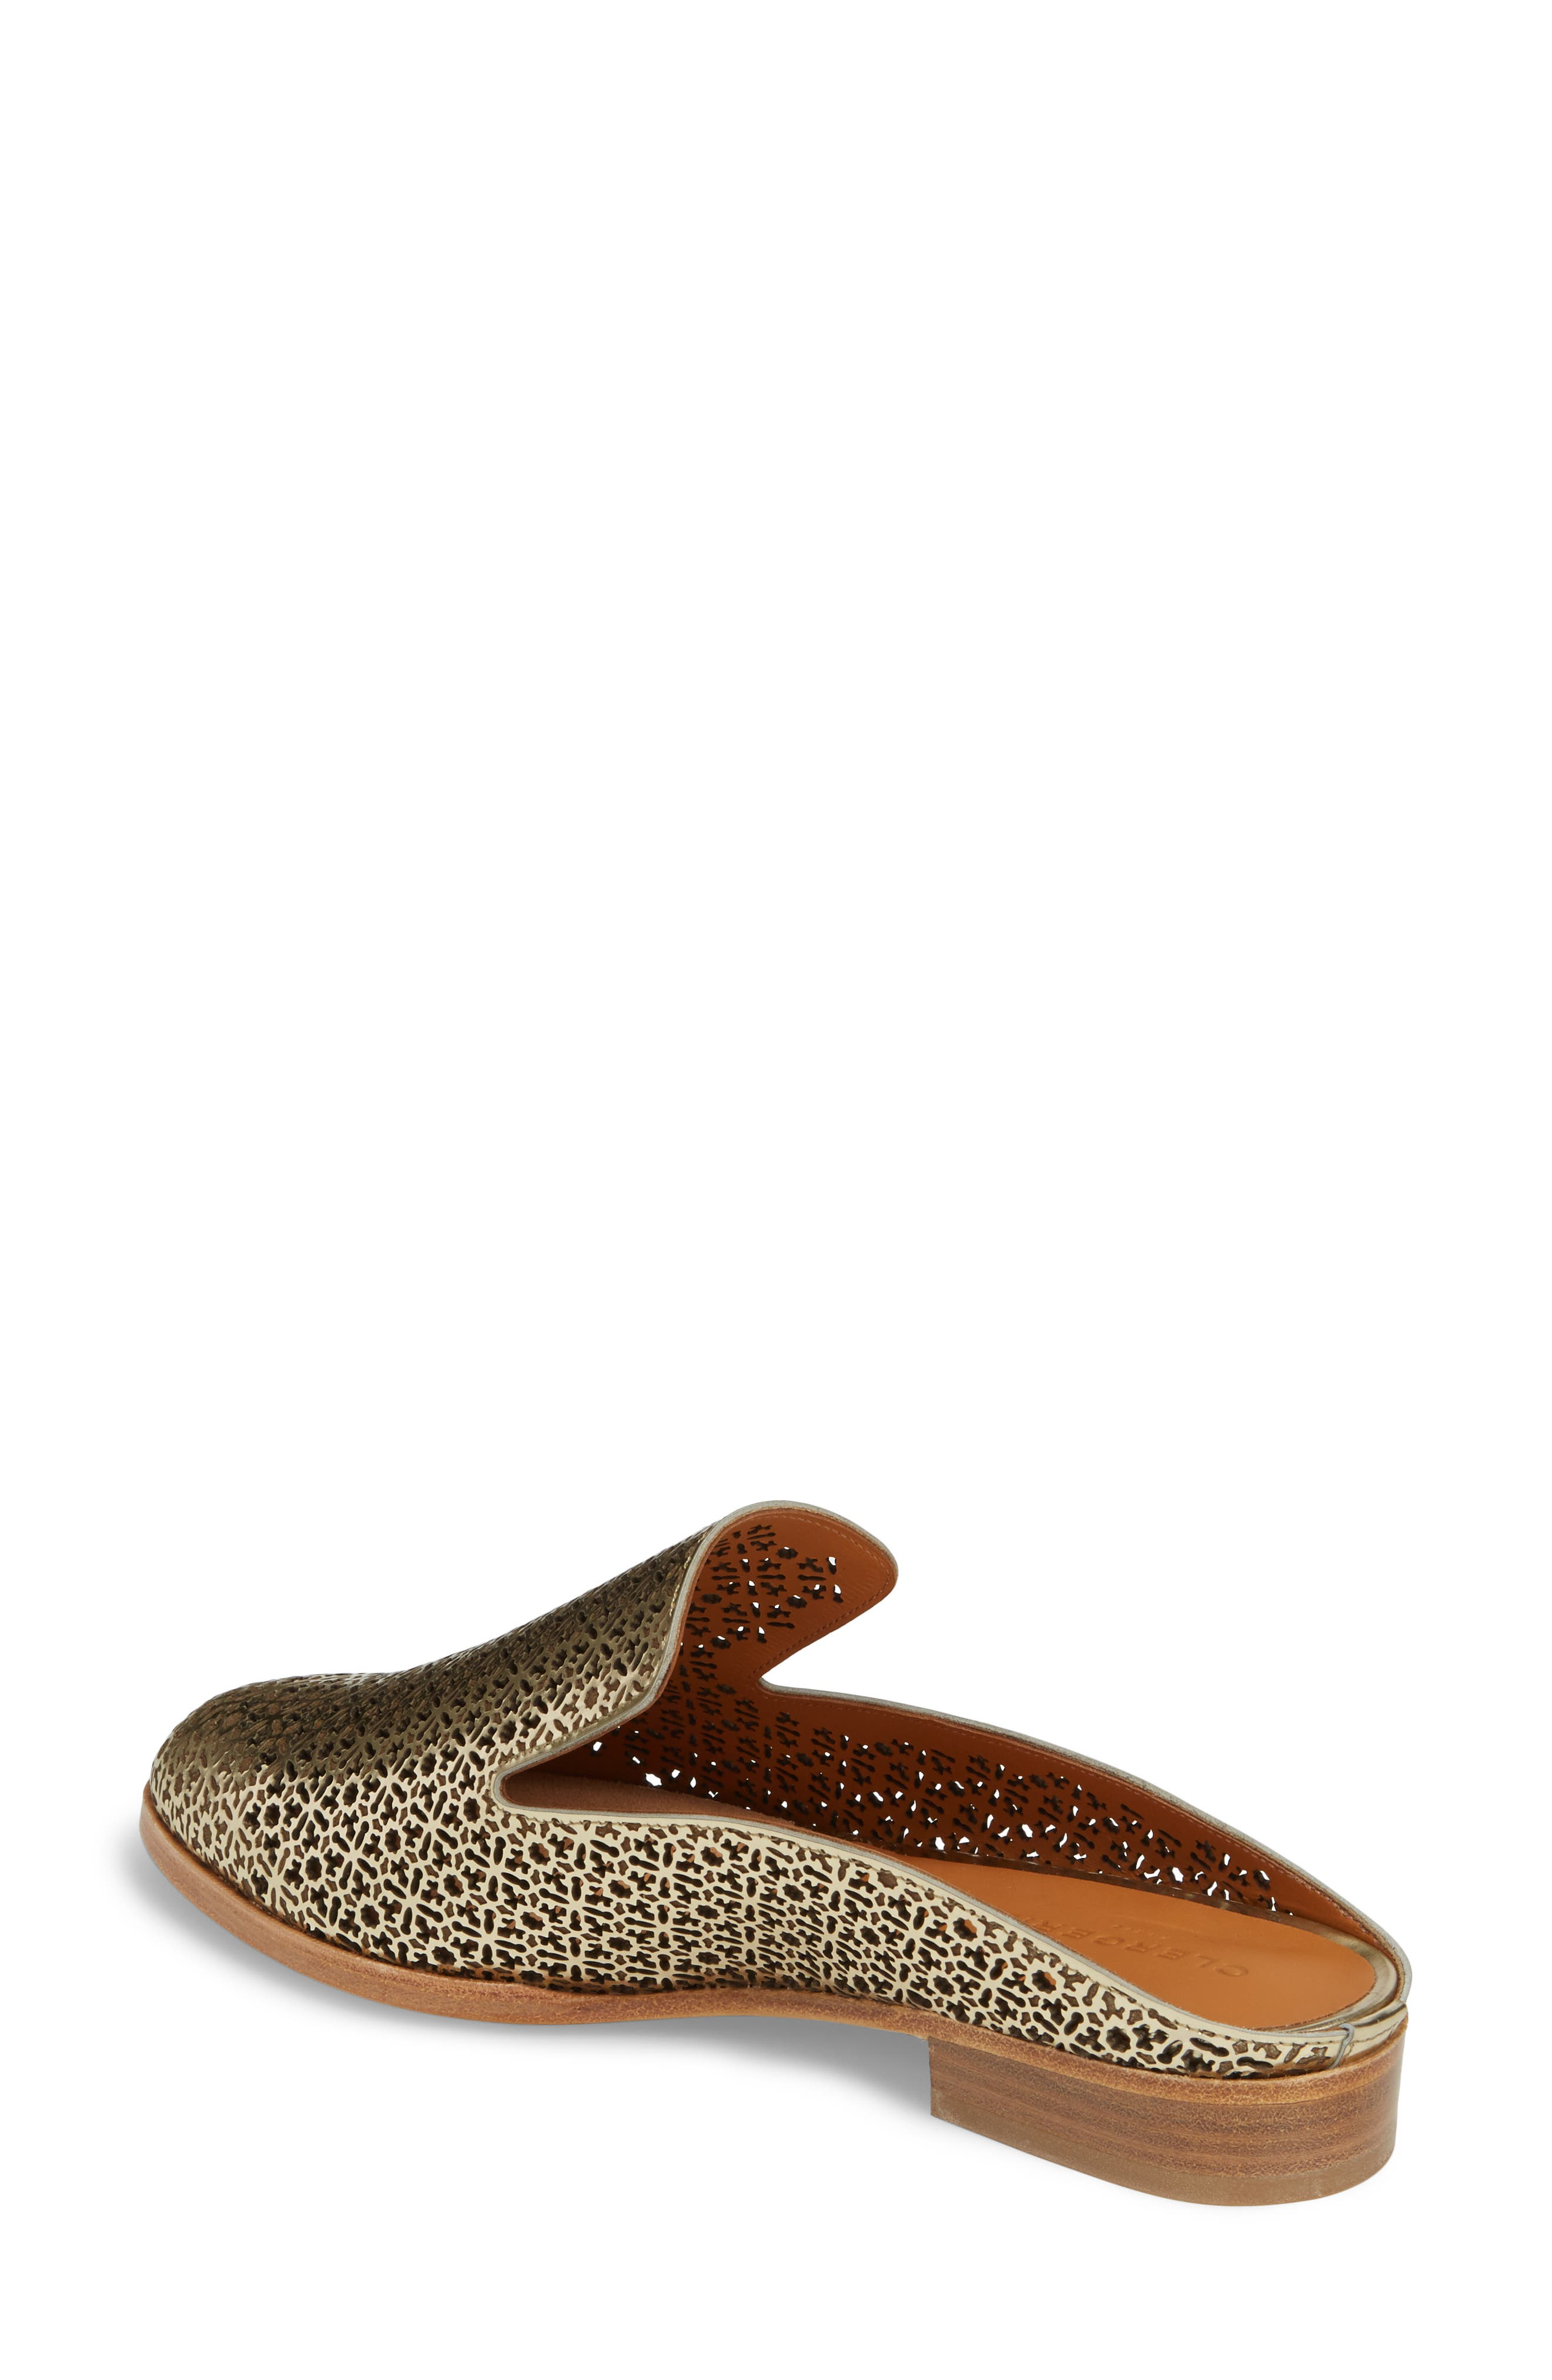 Asier Perforated Loafer Mule,                             Alternate thumbnail 2, color,                             Platino